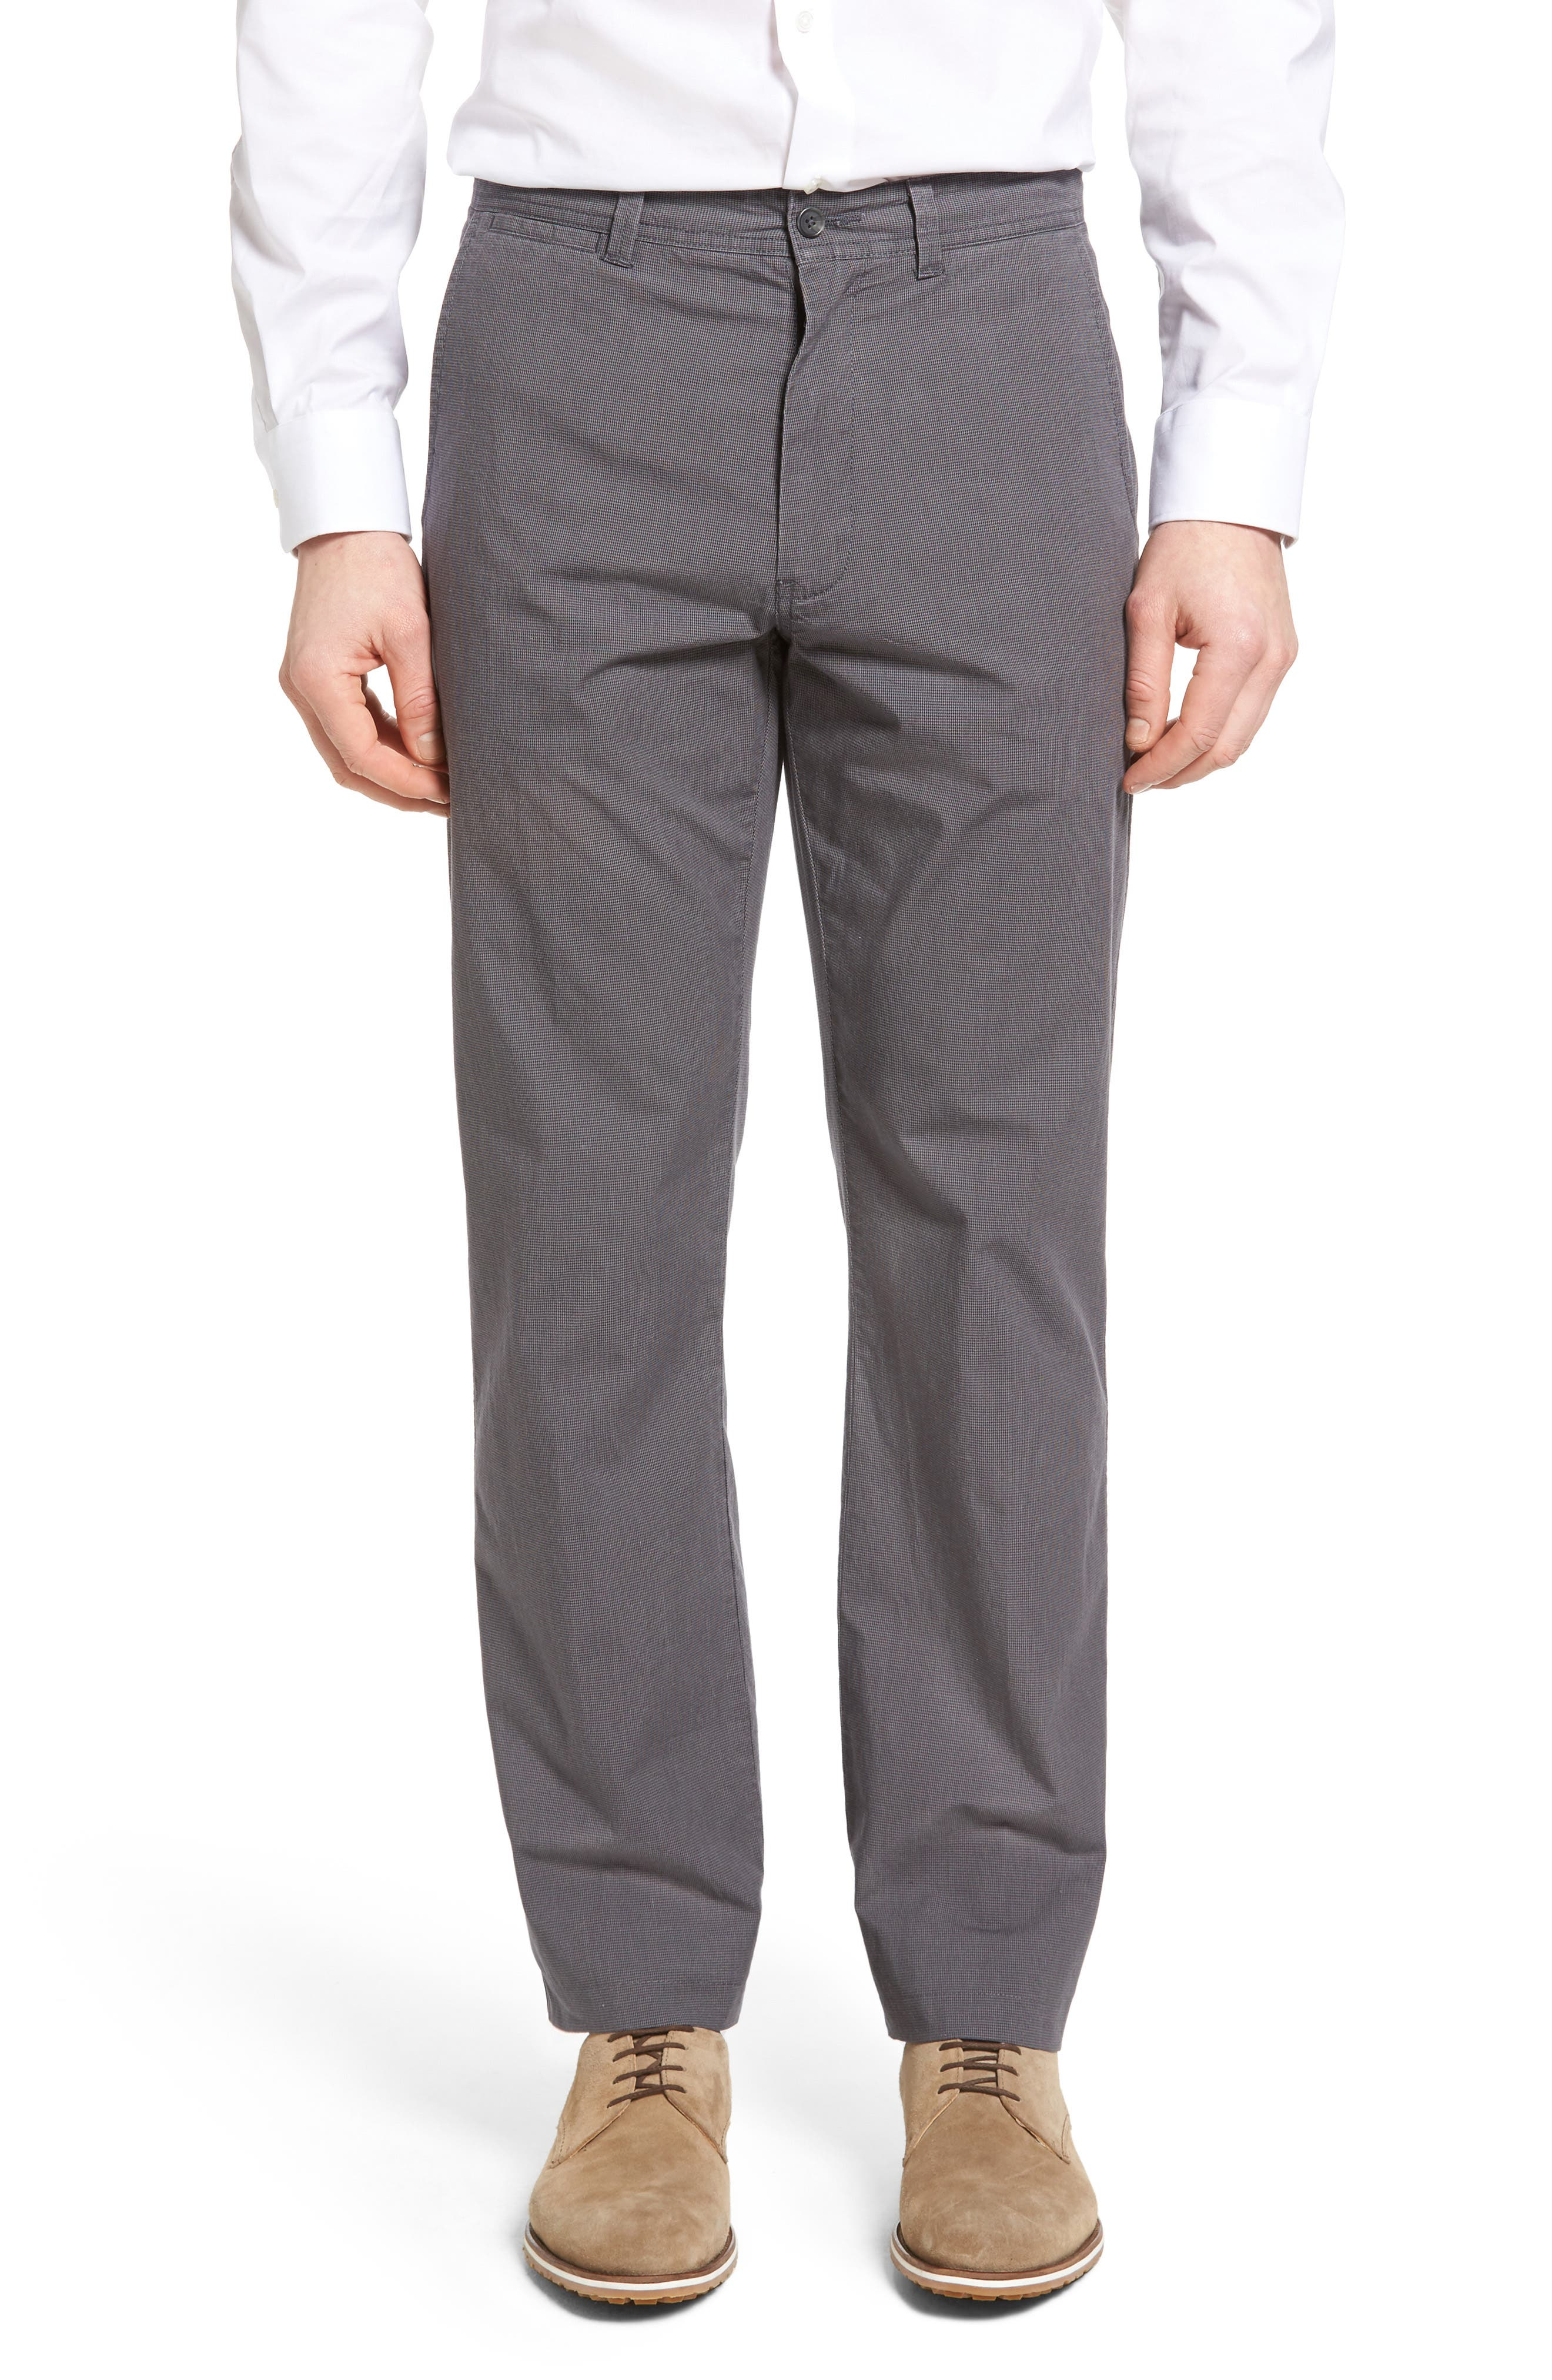 Woodward Regular Fit Trousers,                         Main,                         color, 069